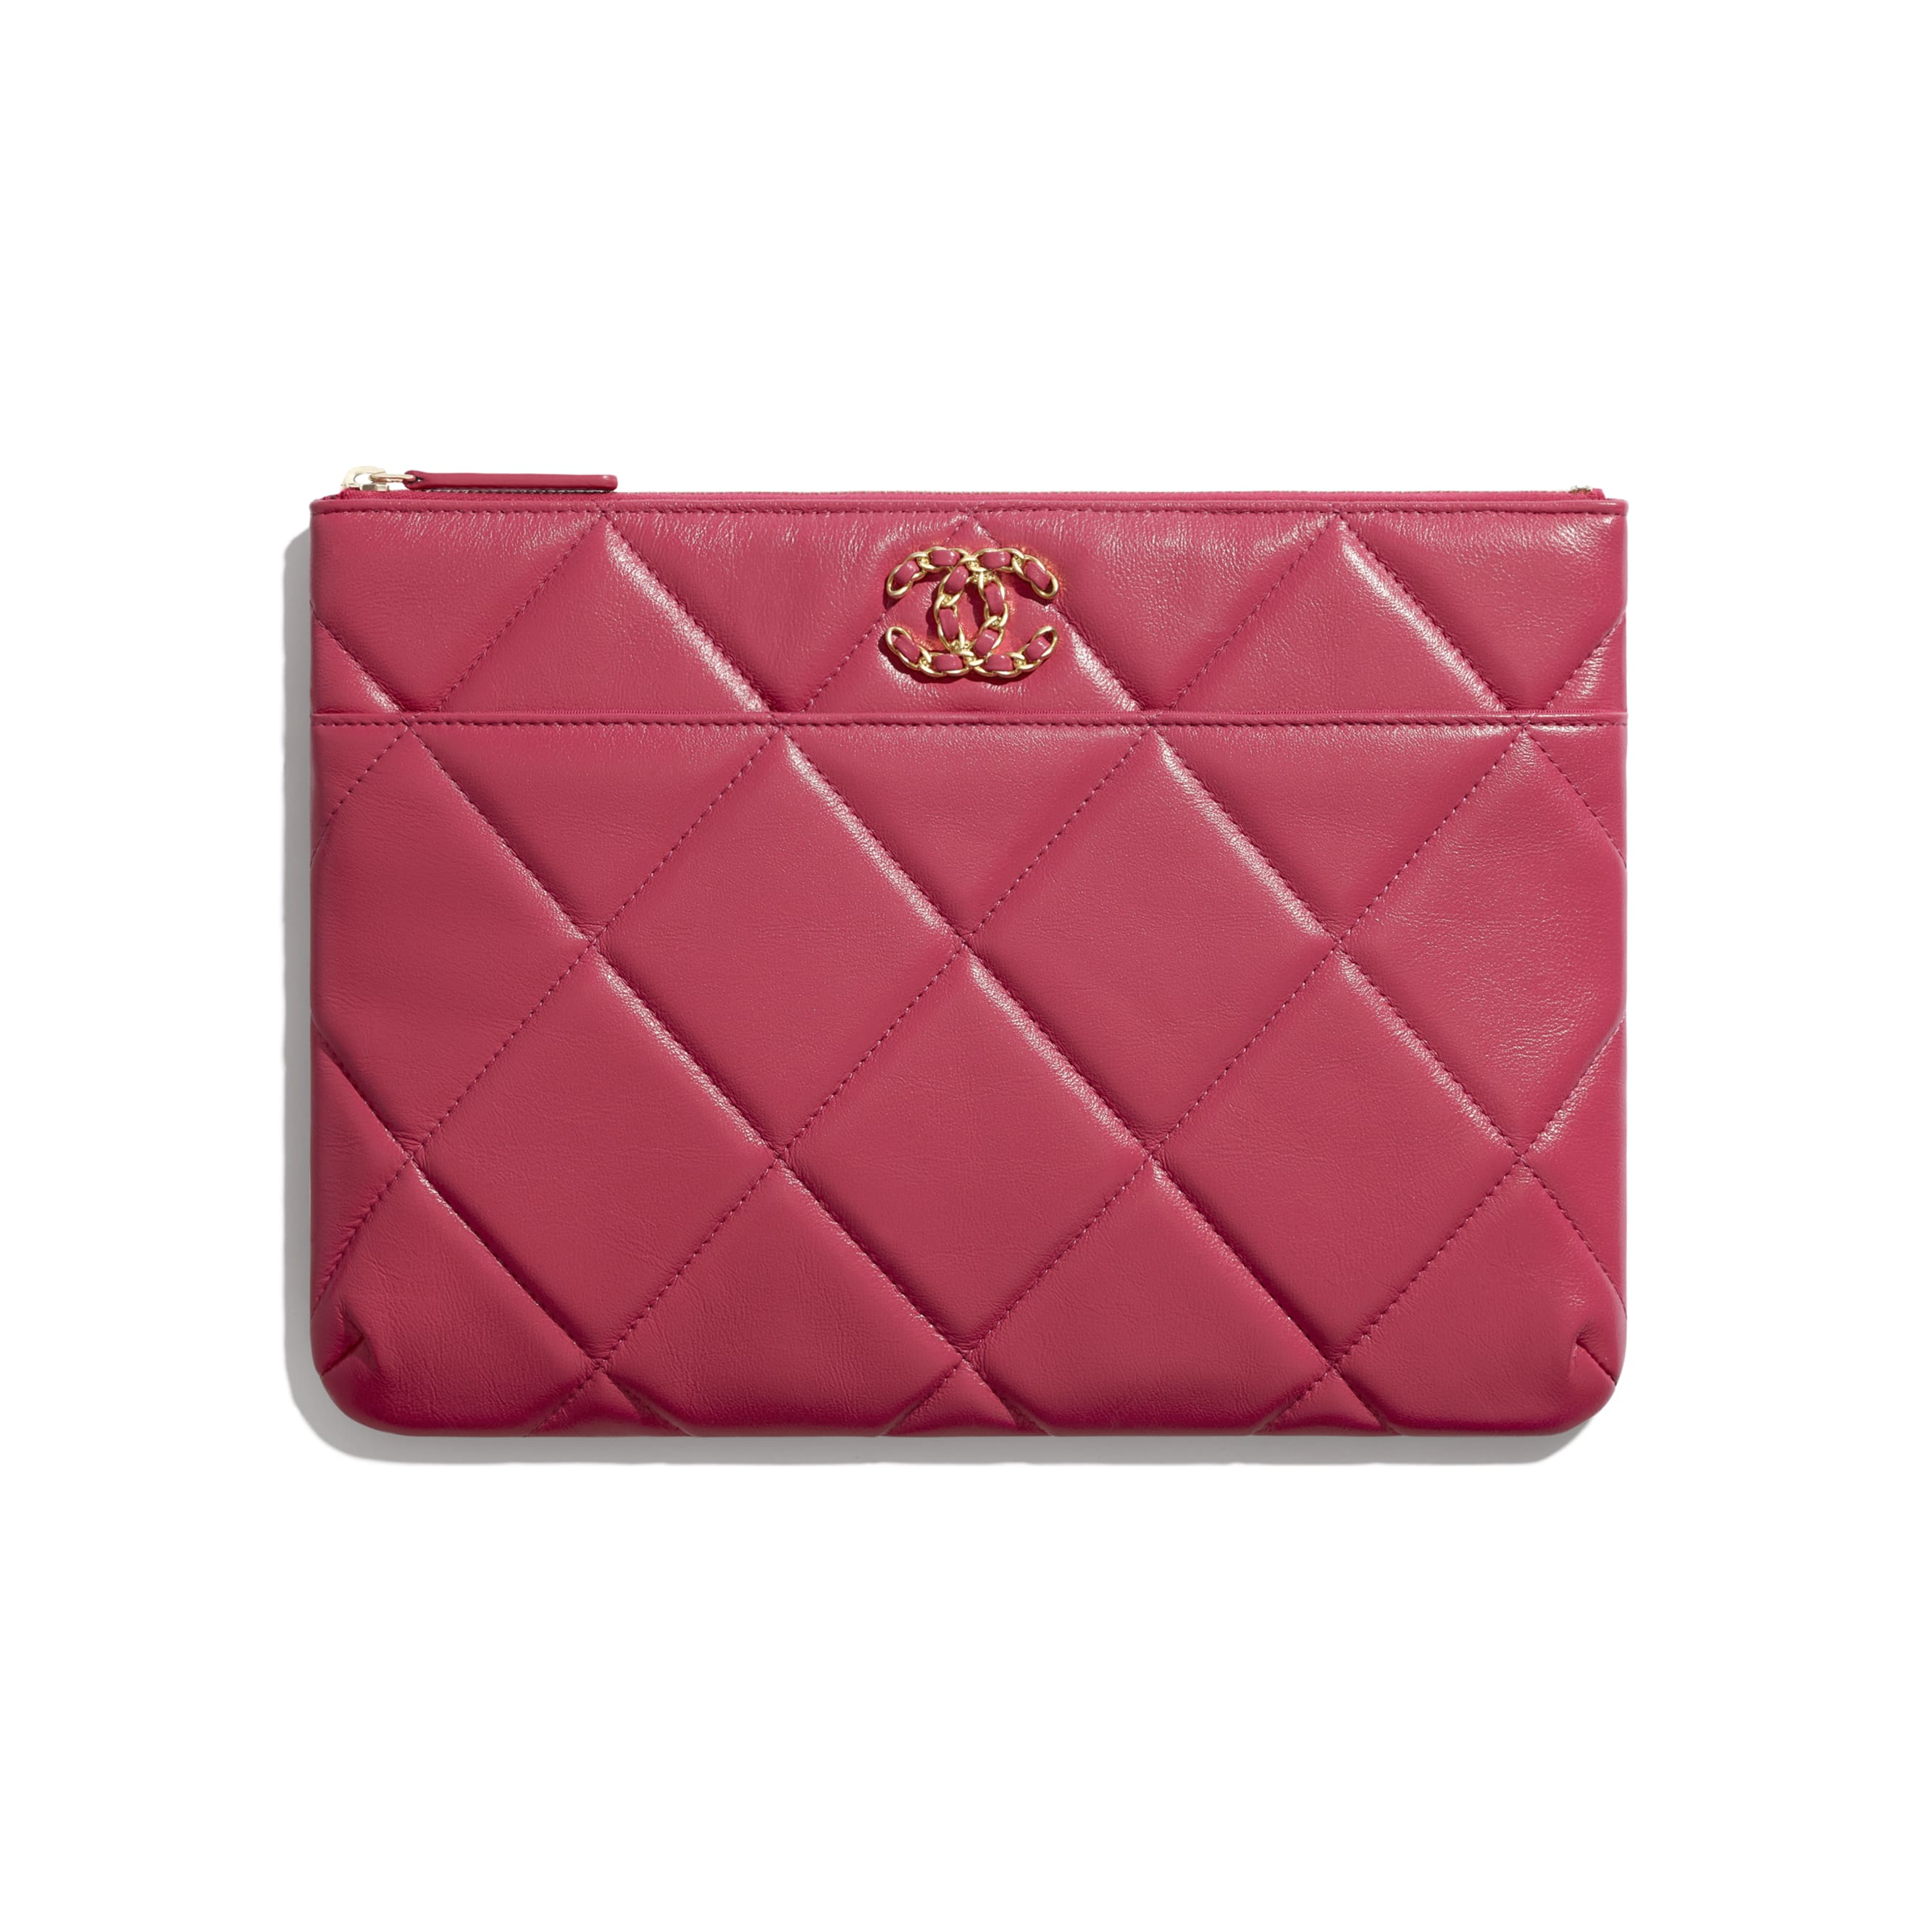 CHANEL 19 Pouch - Dark Pink - Lambskin, Gold-Tone, Silver-Tone & Ruthenium-Finish Metal - CHANEL - Default view - see standard sized version